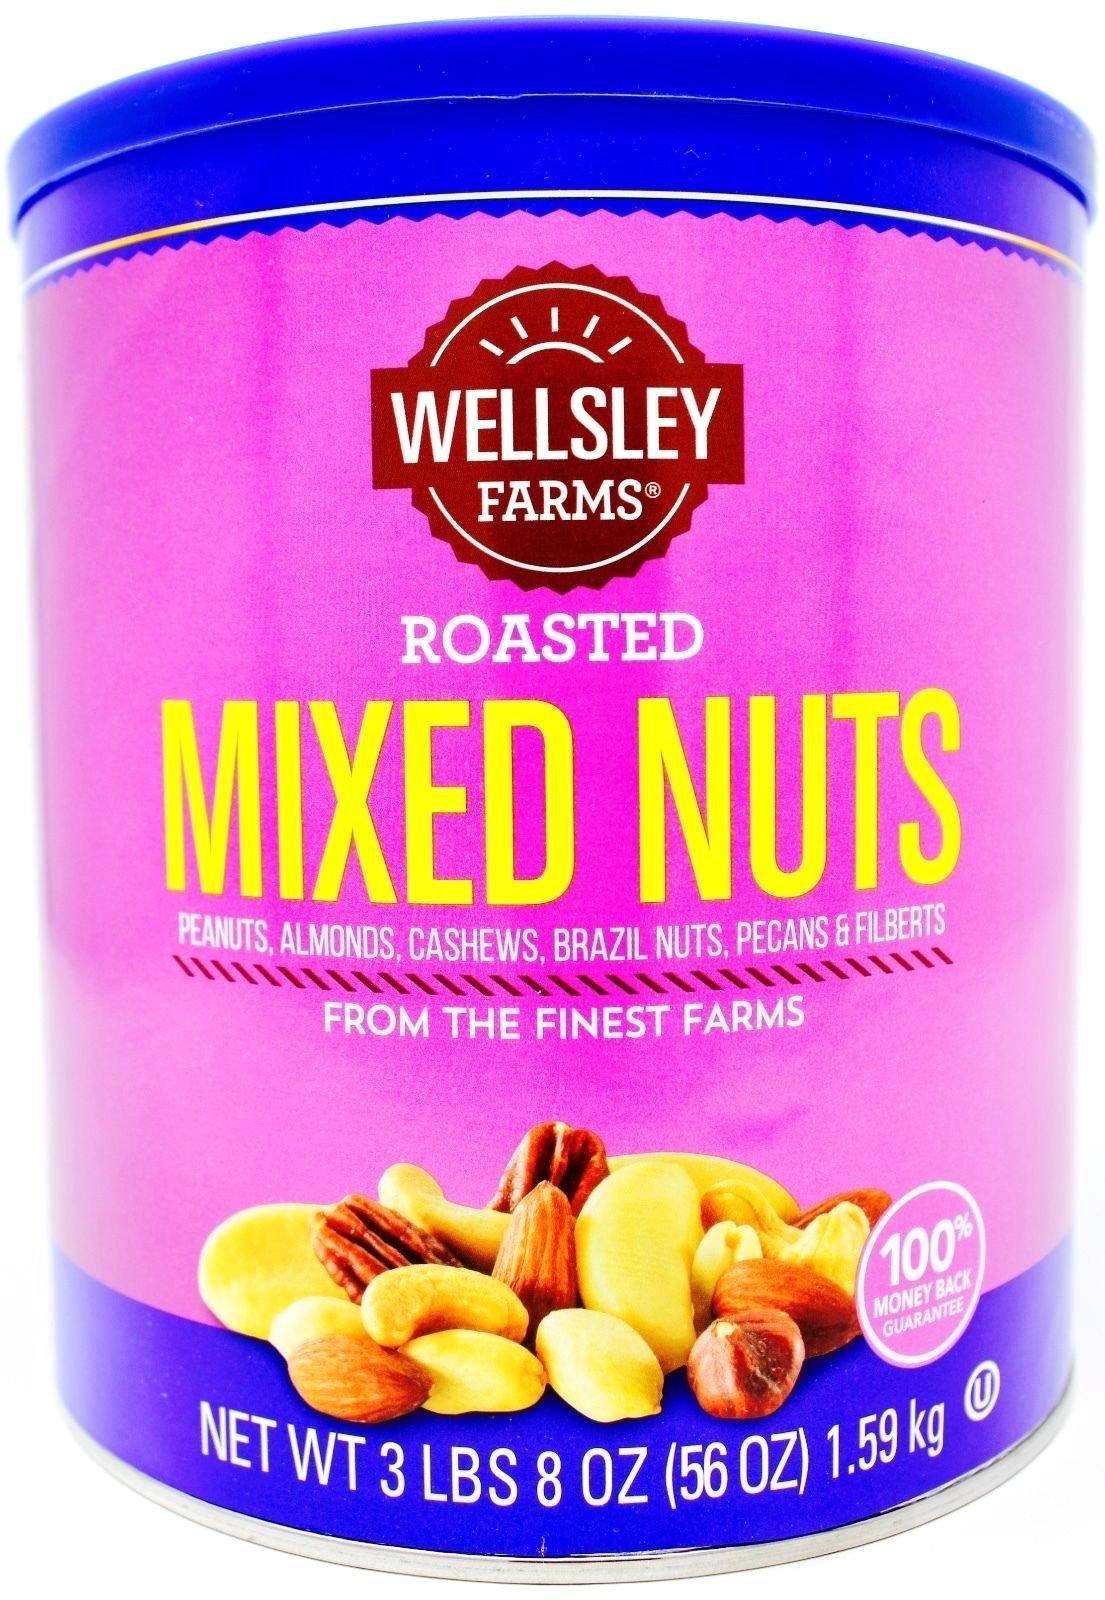 Wellsley Farms Roasted Mixed Nuts, 56 OZ